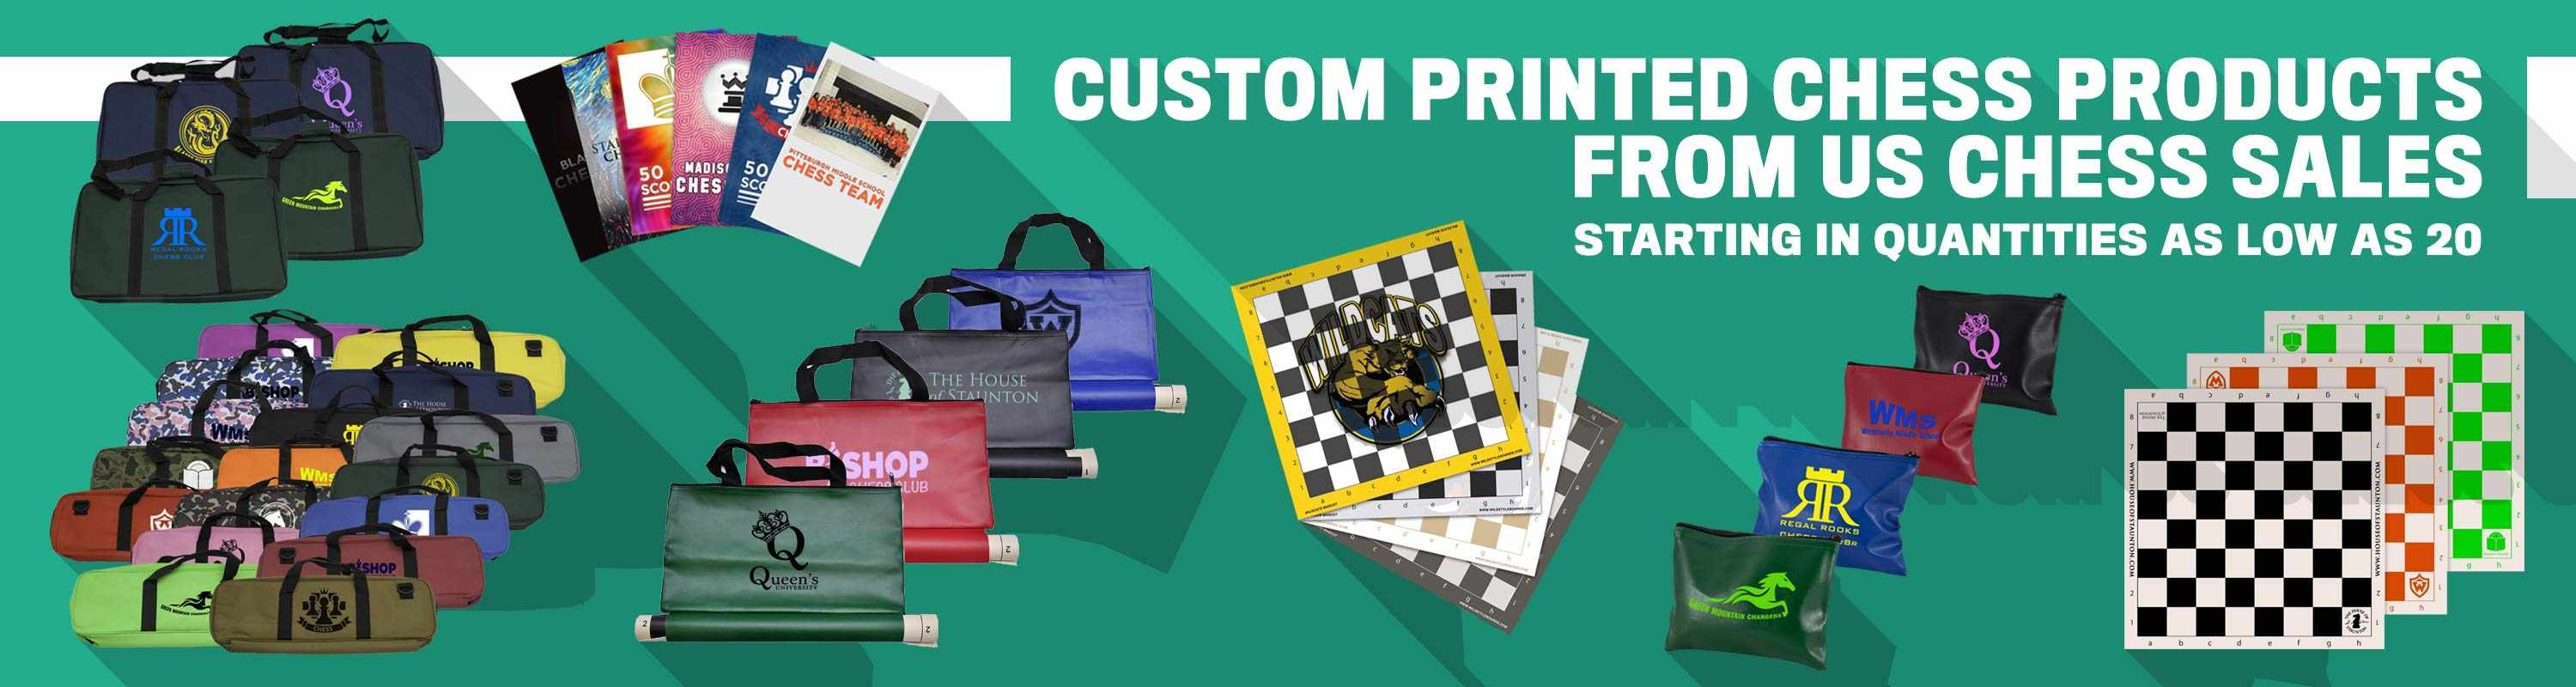 Custom Printed Chess Products from US Chess Sales! Starting in quantities as low as 20!